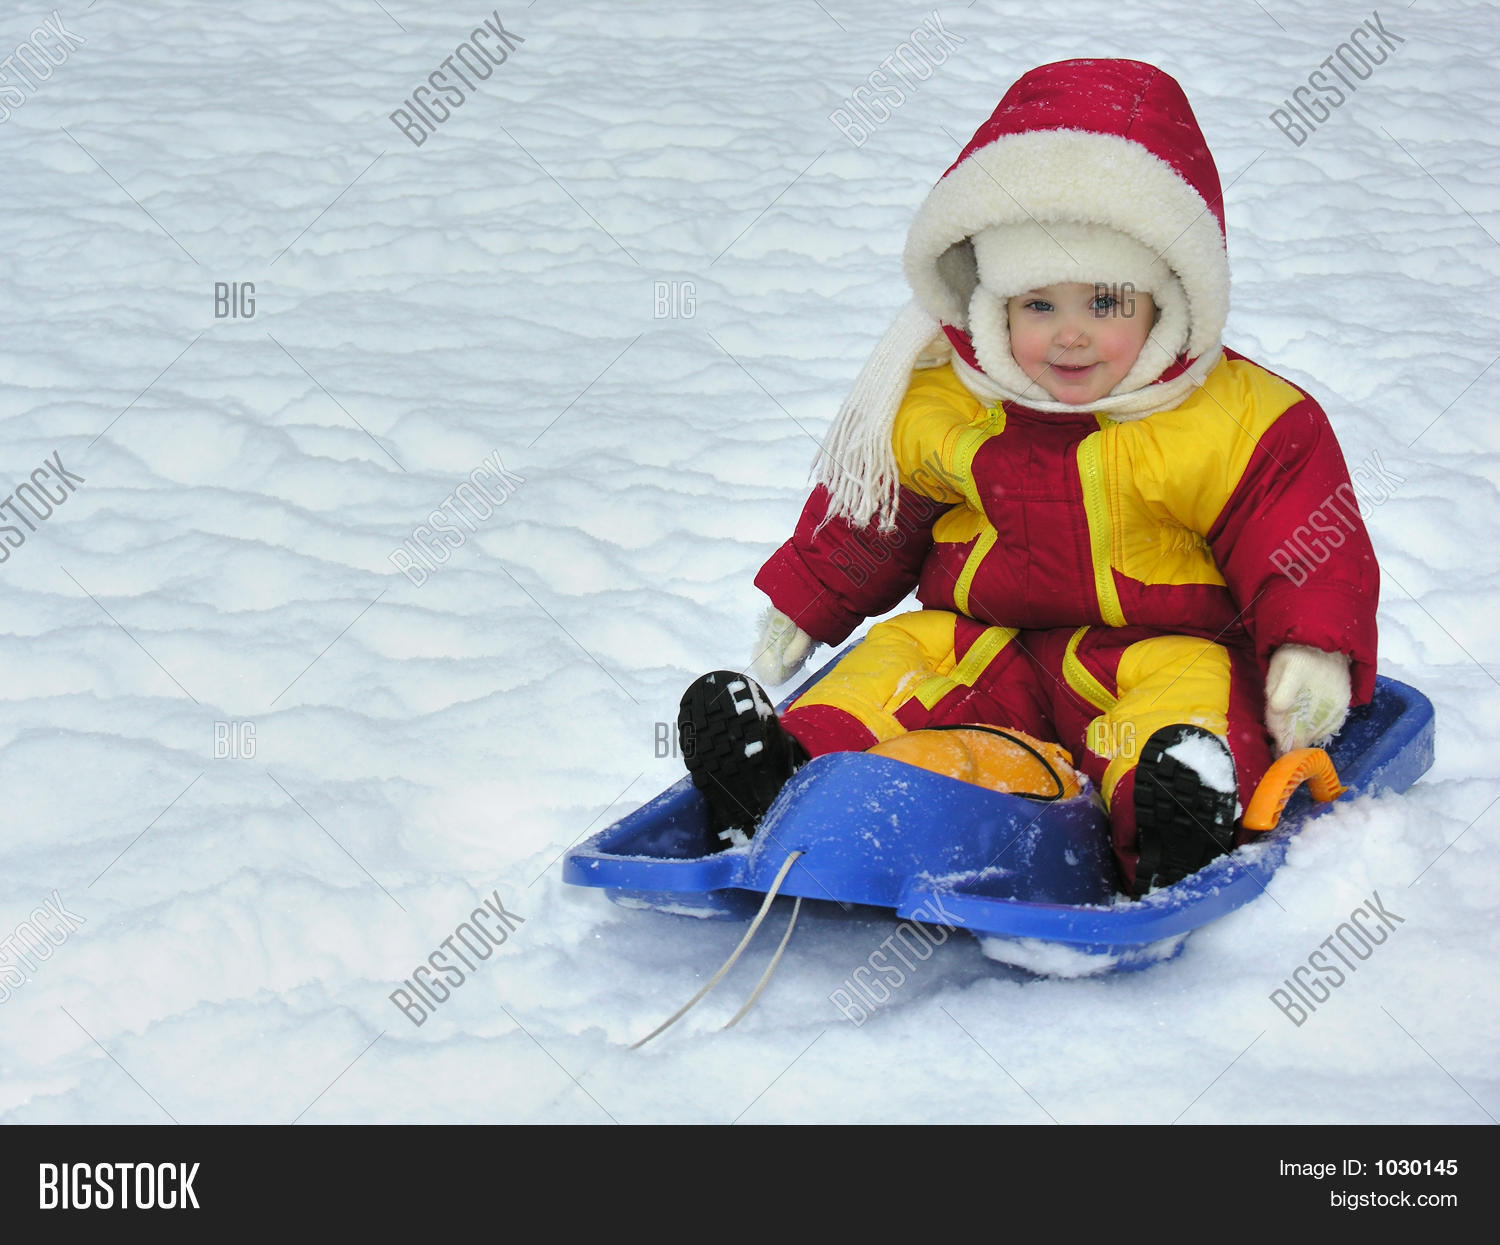 accelerate,active,baby,child,children,christmas,cold,exercise,extreme,fast,freeze,fun,girl,gloves,happy,holiday,ice,infant,jacket,kid,laughter,little,mitten,outdoors,people,play,playing,race,racers,sled,sledding,slide,smile,snow,snowboard,snowflakes,speed,sports,tobogan,toddler,winter,winter holiday,young